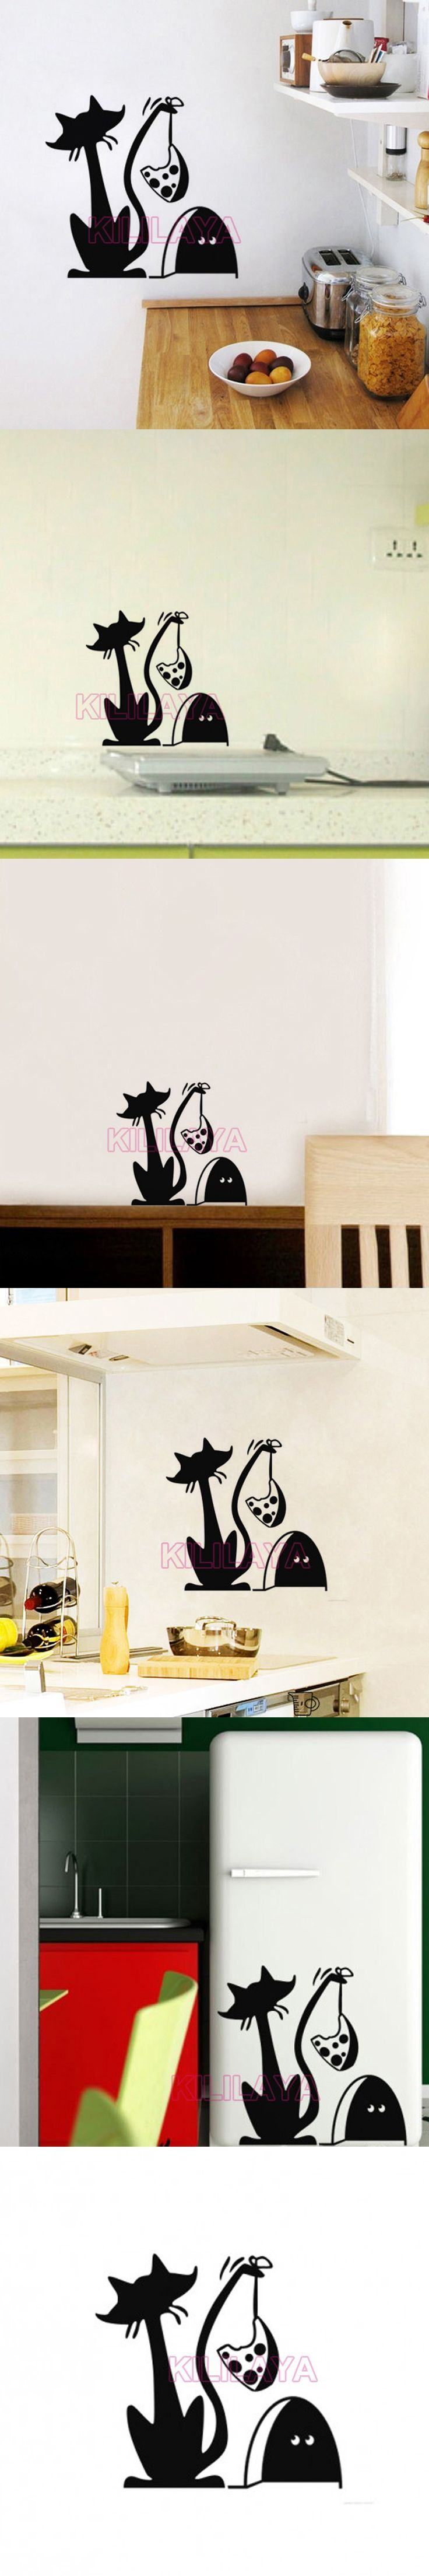 Deer head wall decal option a modern wall decals by dana decals - Funny Cat And Mouse Trap Vinyl Wall Decals Wallpaper For Kids Living Room Fridge Mural Wall Sticker Art Home Decor Decoration